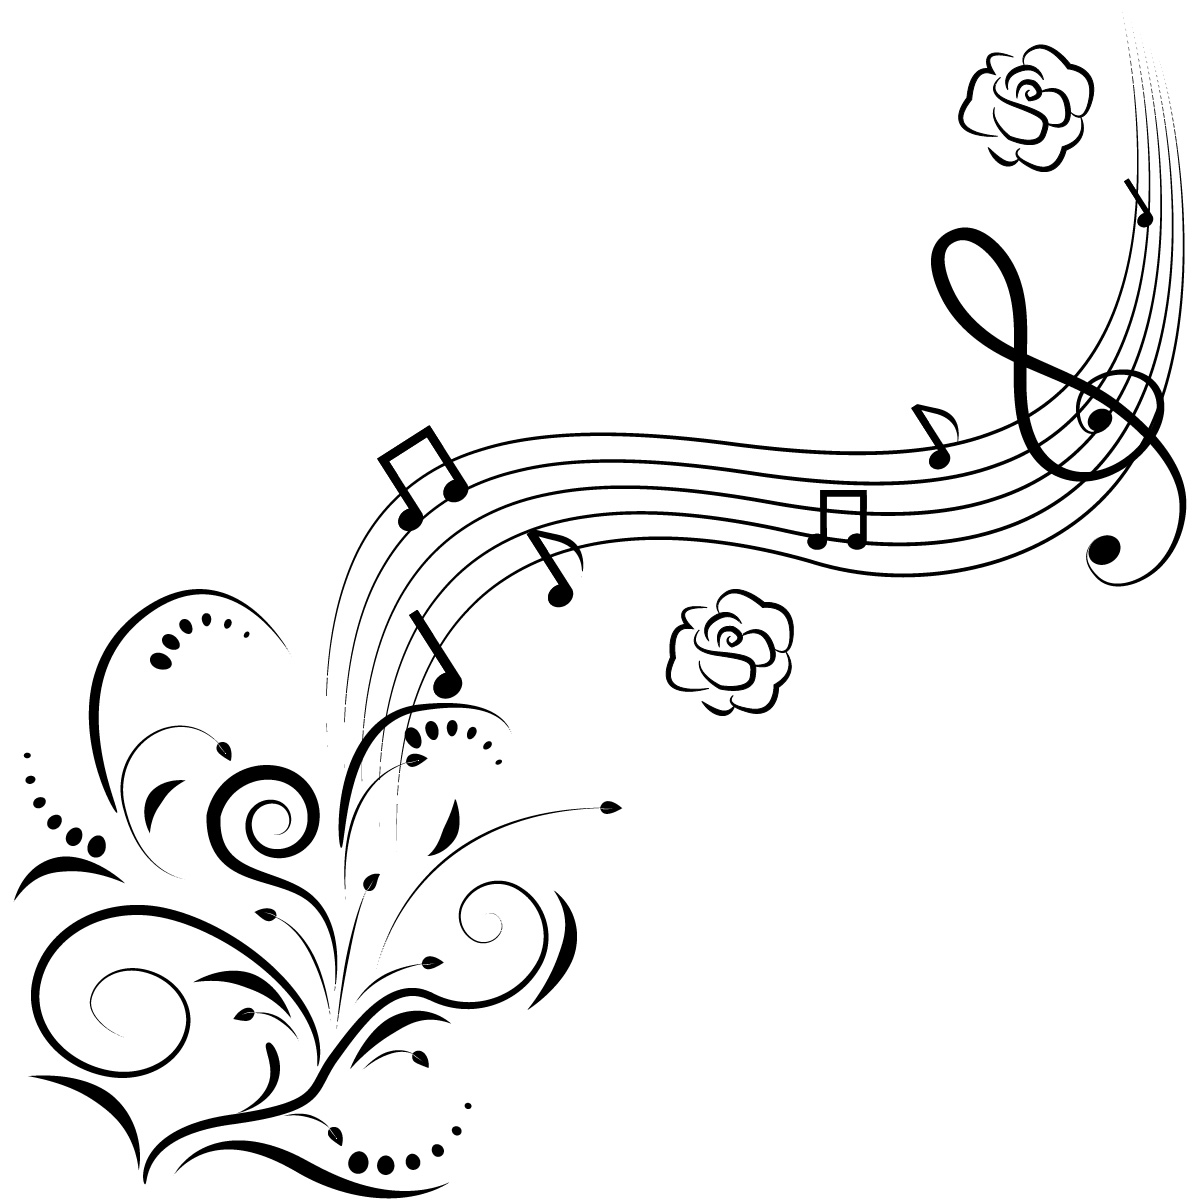 music note coloring page design